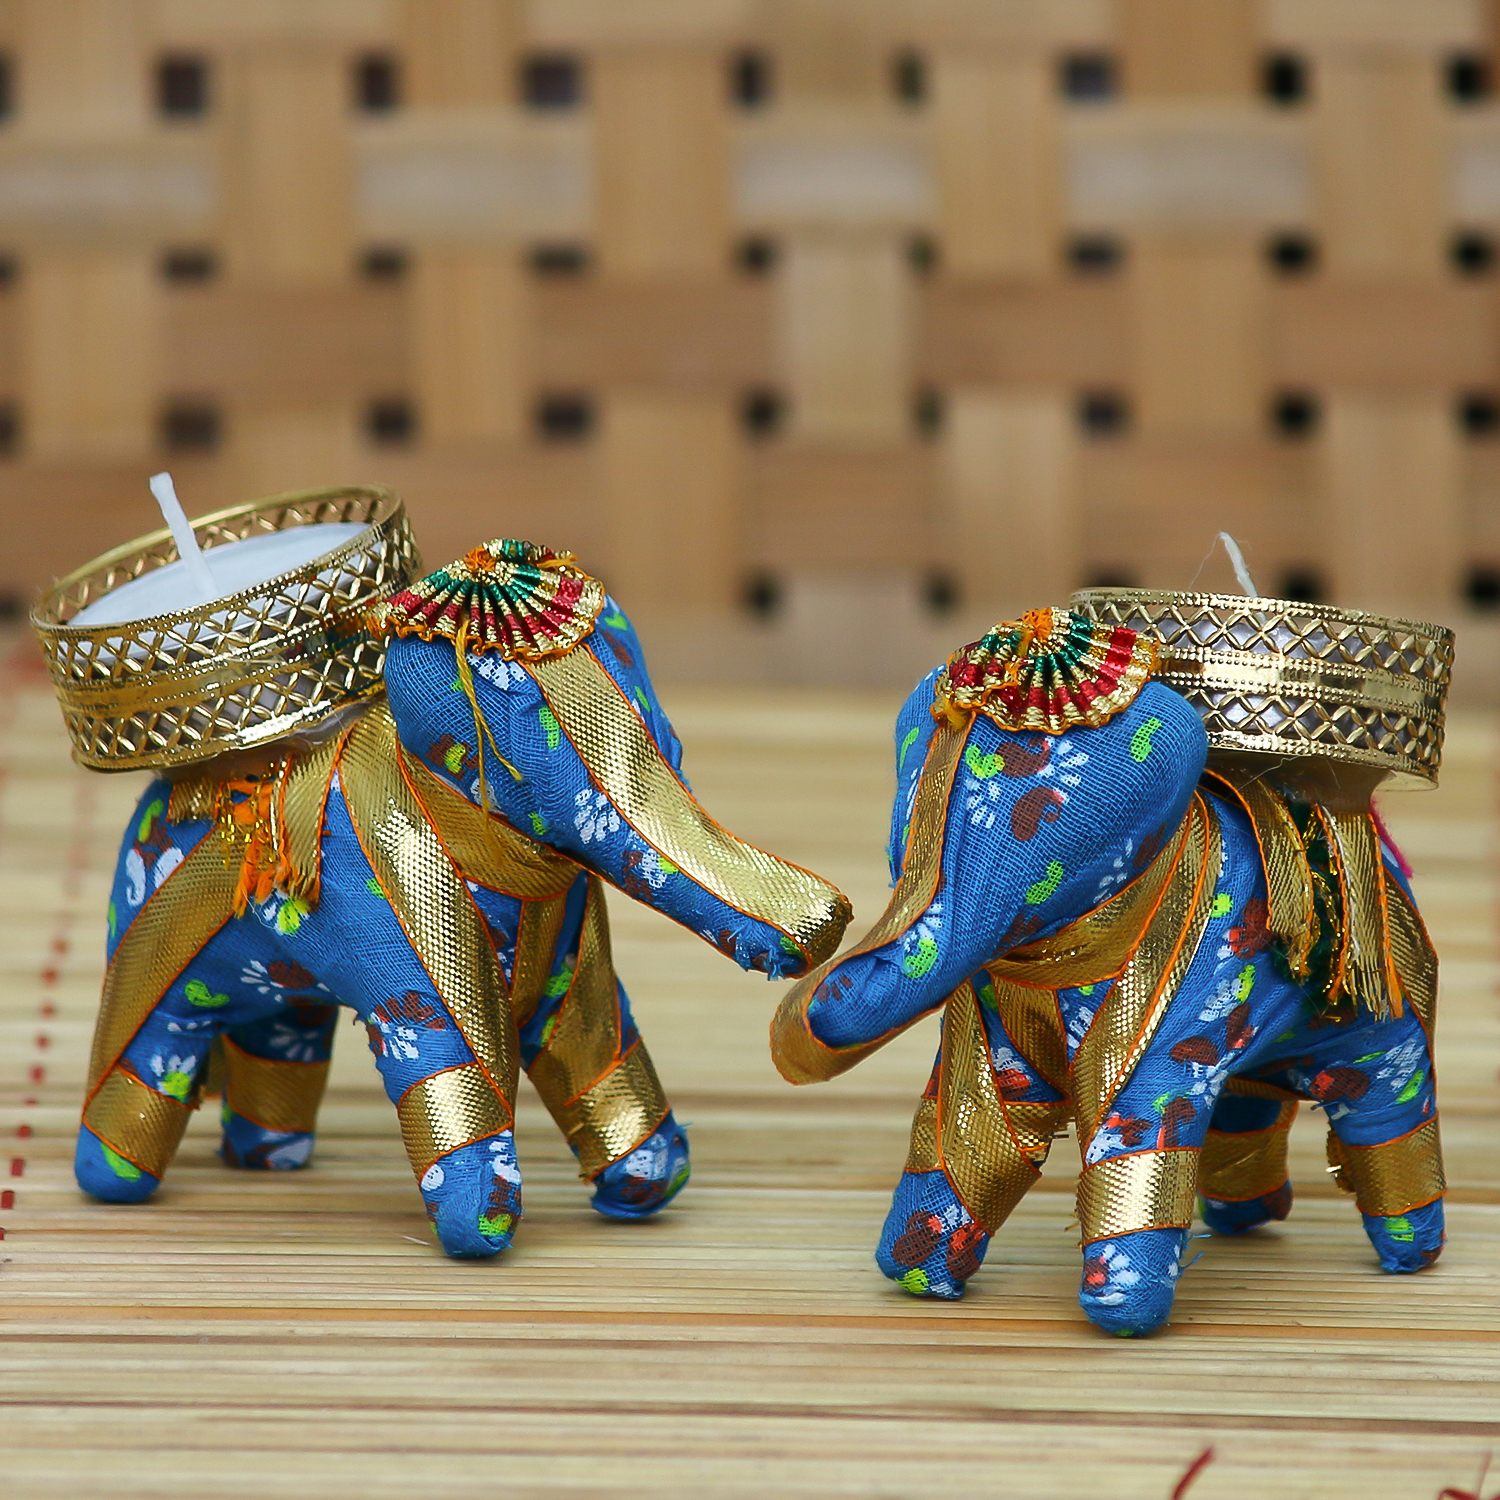 Elephant Design Handcrafted Tea Light Holder Indian Home Decor